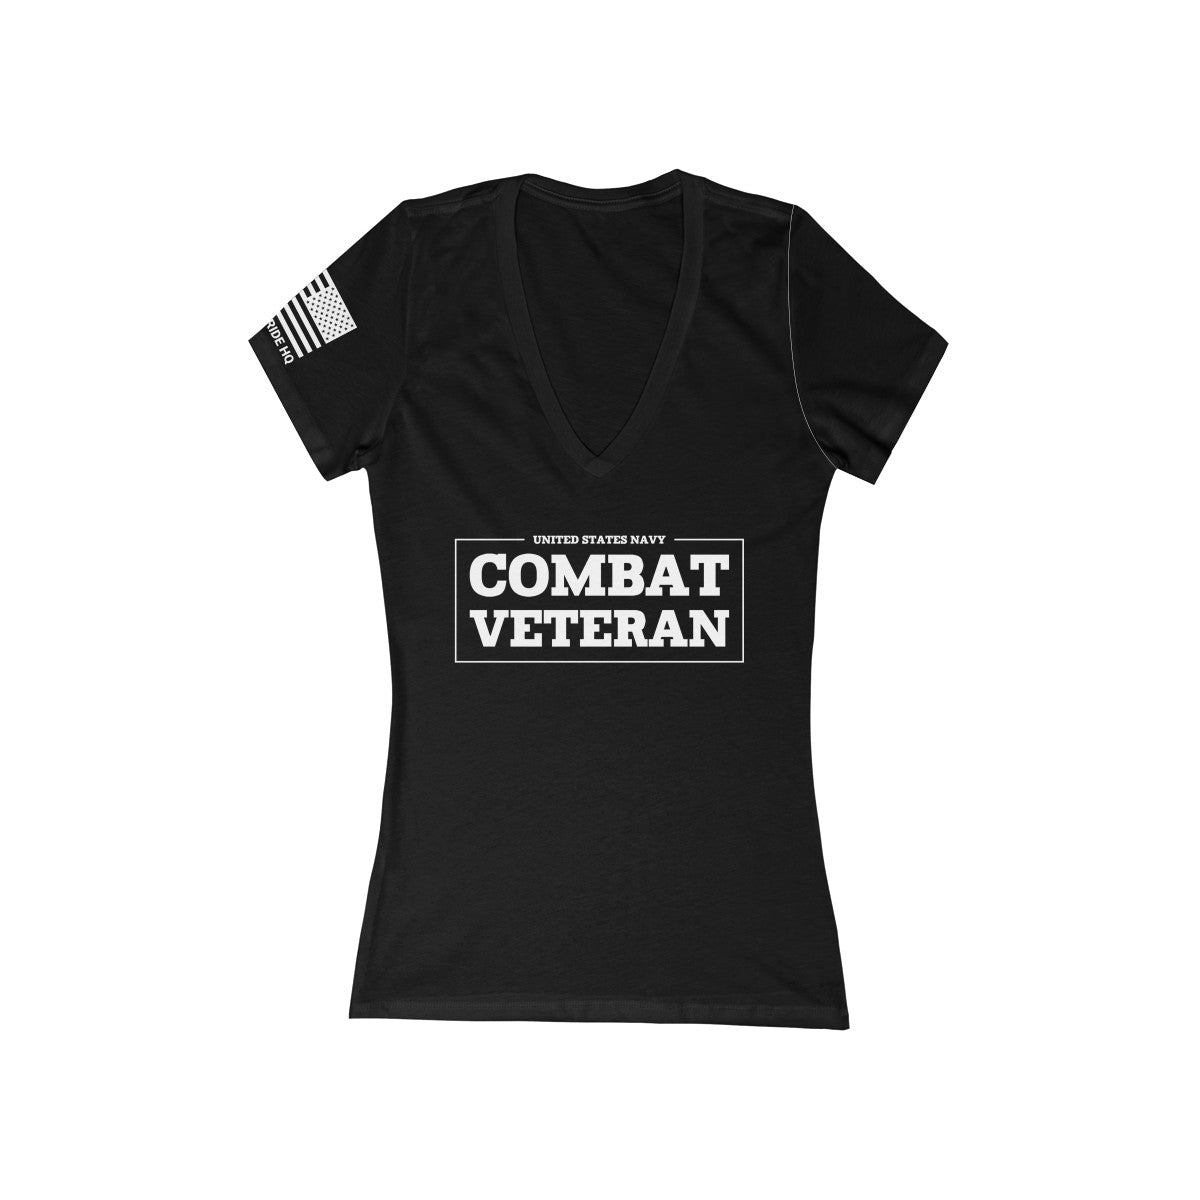 United States Navy Combat Veteran Women's V-Neck Tee